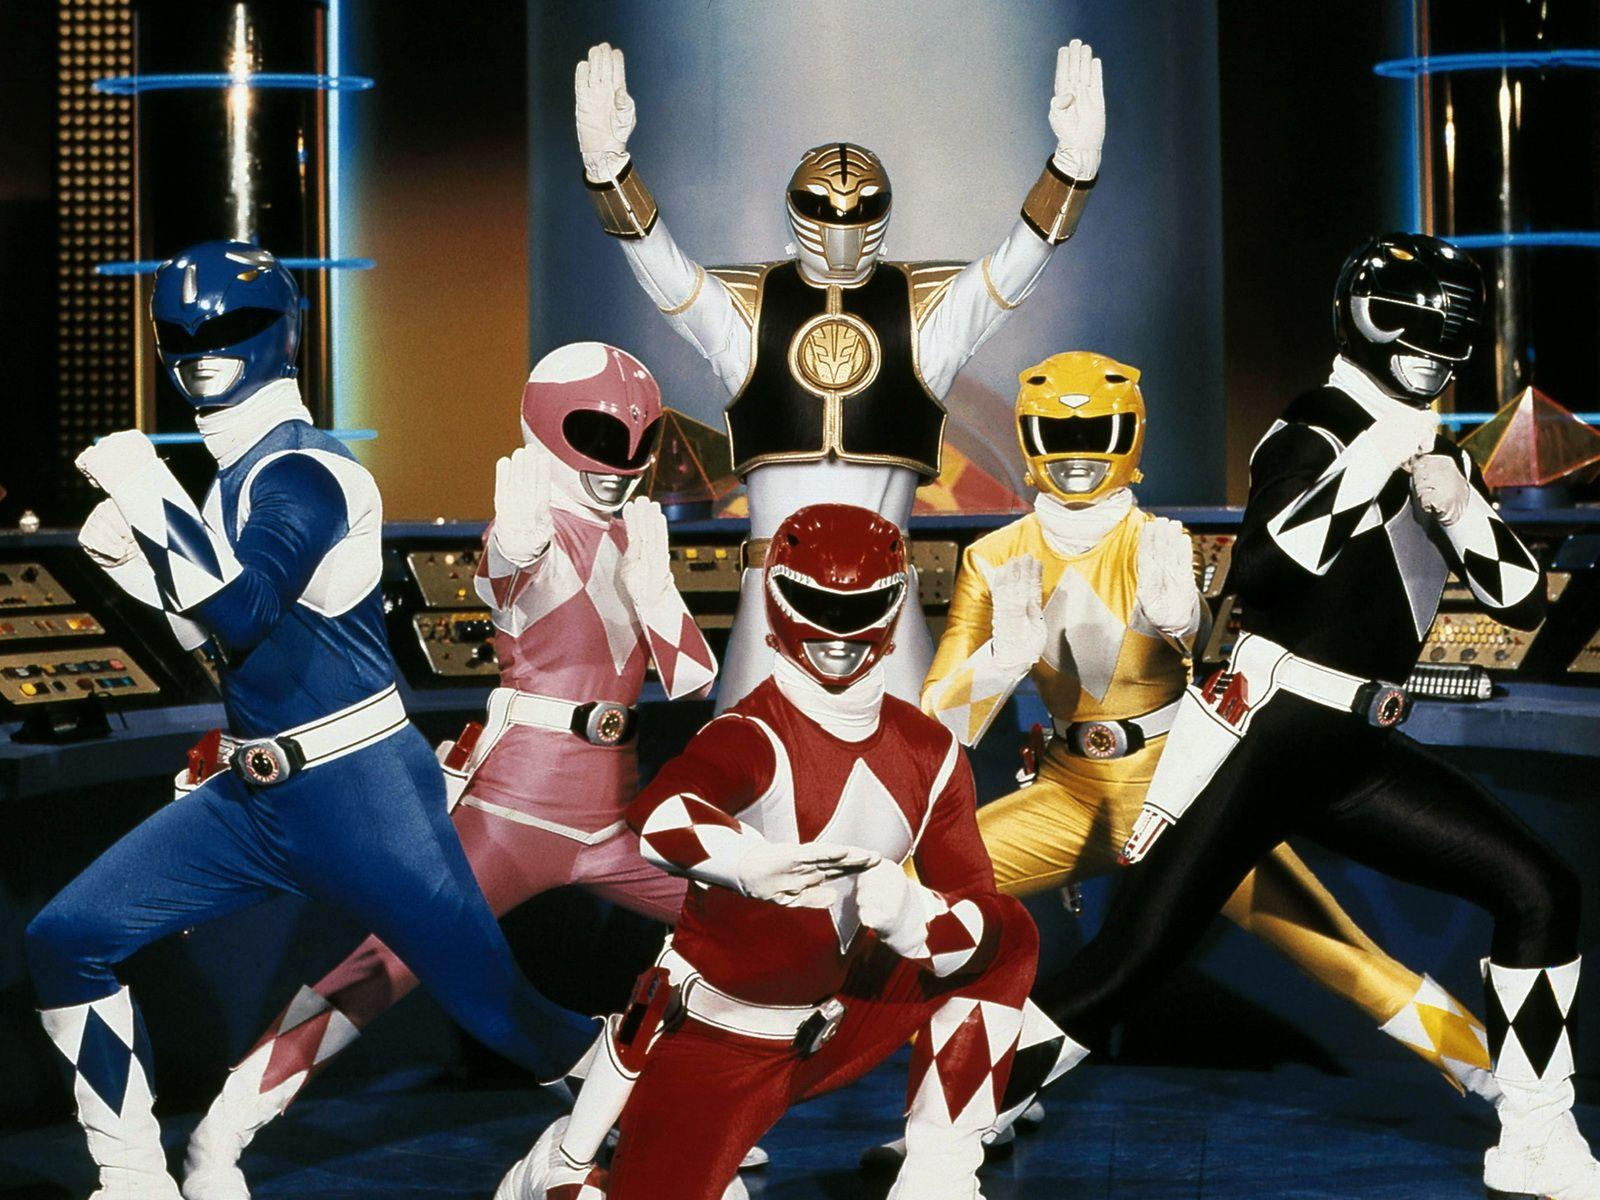 Mighty Morphin Power Rangers Wallpapers Wallpaper Cave